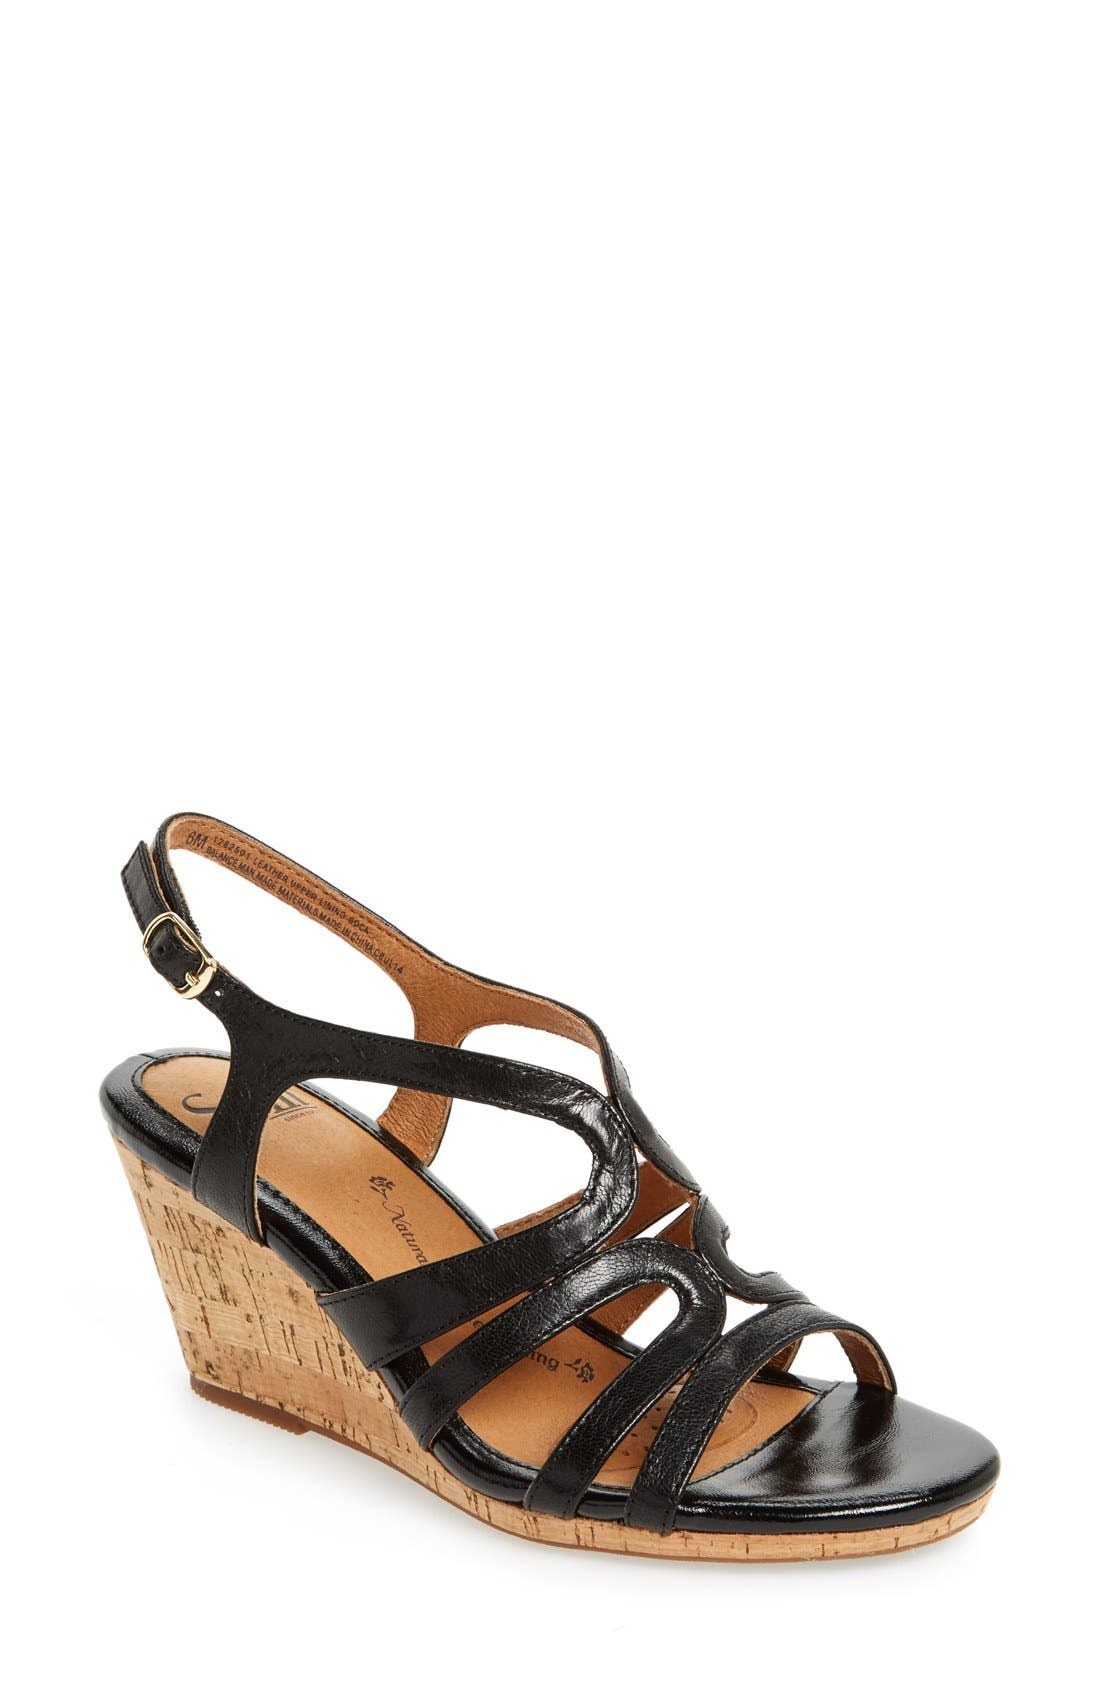 Main Image - Söfft 'Corinth' Leather Wedge Sandal (Women)